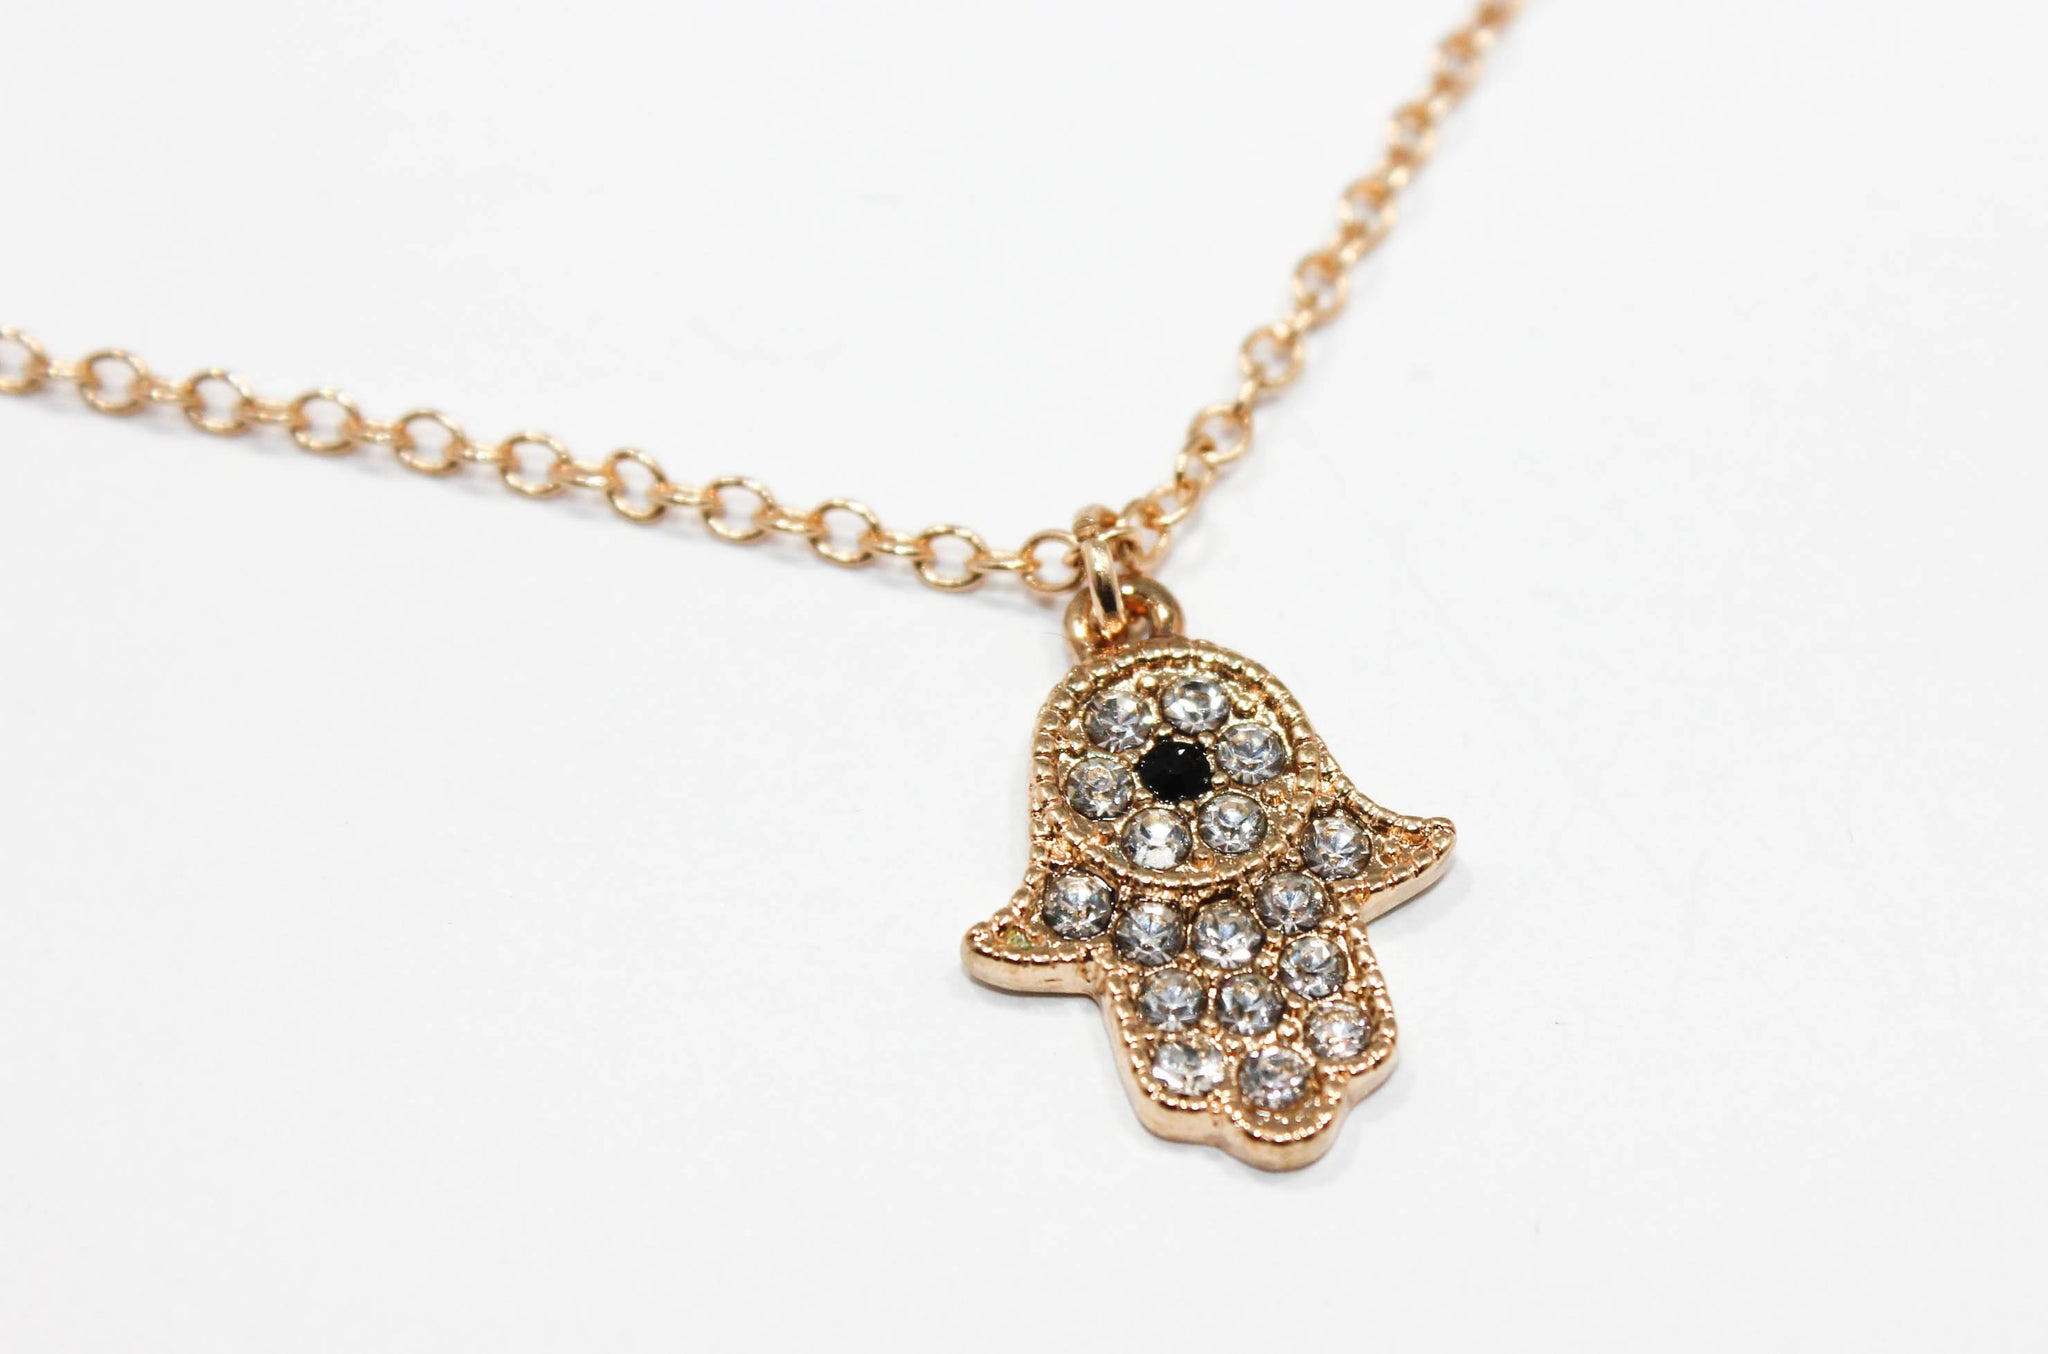 chains hand wholesale evil pendant blue fatima necklace eyes jewelry product hamsa gold for necklaces eye men diamond